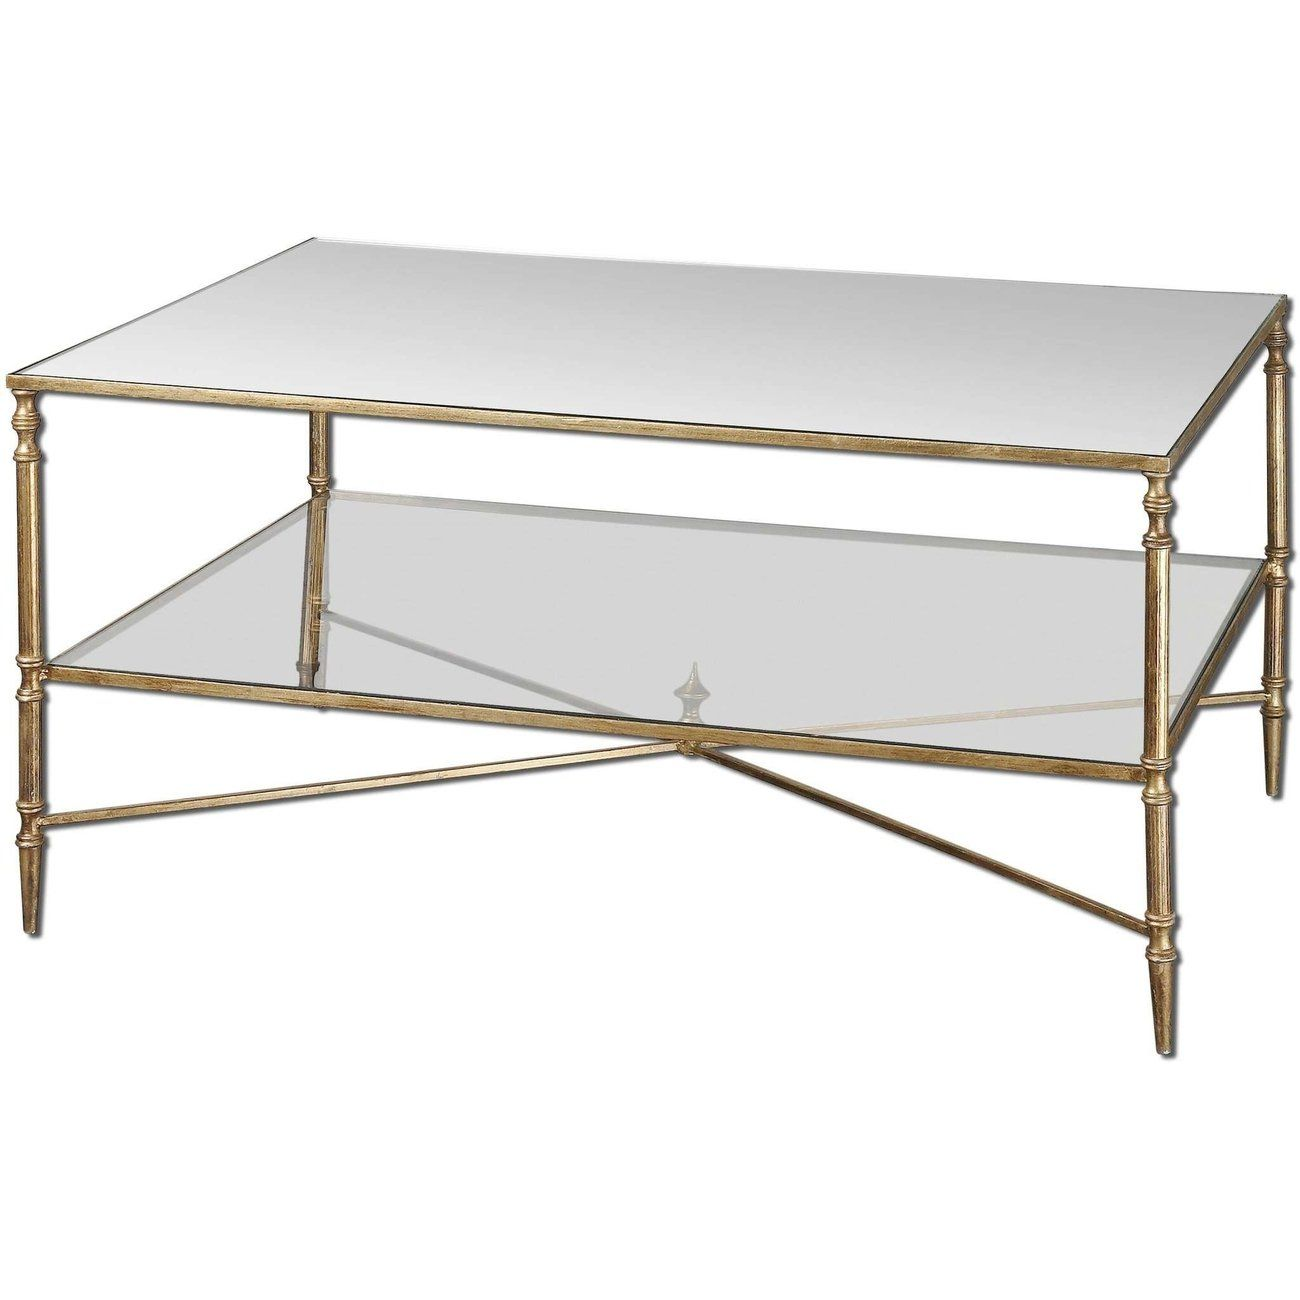 Henzler Mirrored Glass Coffee Tabledefault Title In 2021 Gold Coffee Table Mirrored Coffee Tables Iron Frame Coffee Table [ 1300 x 1300 Pixel ]